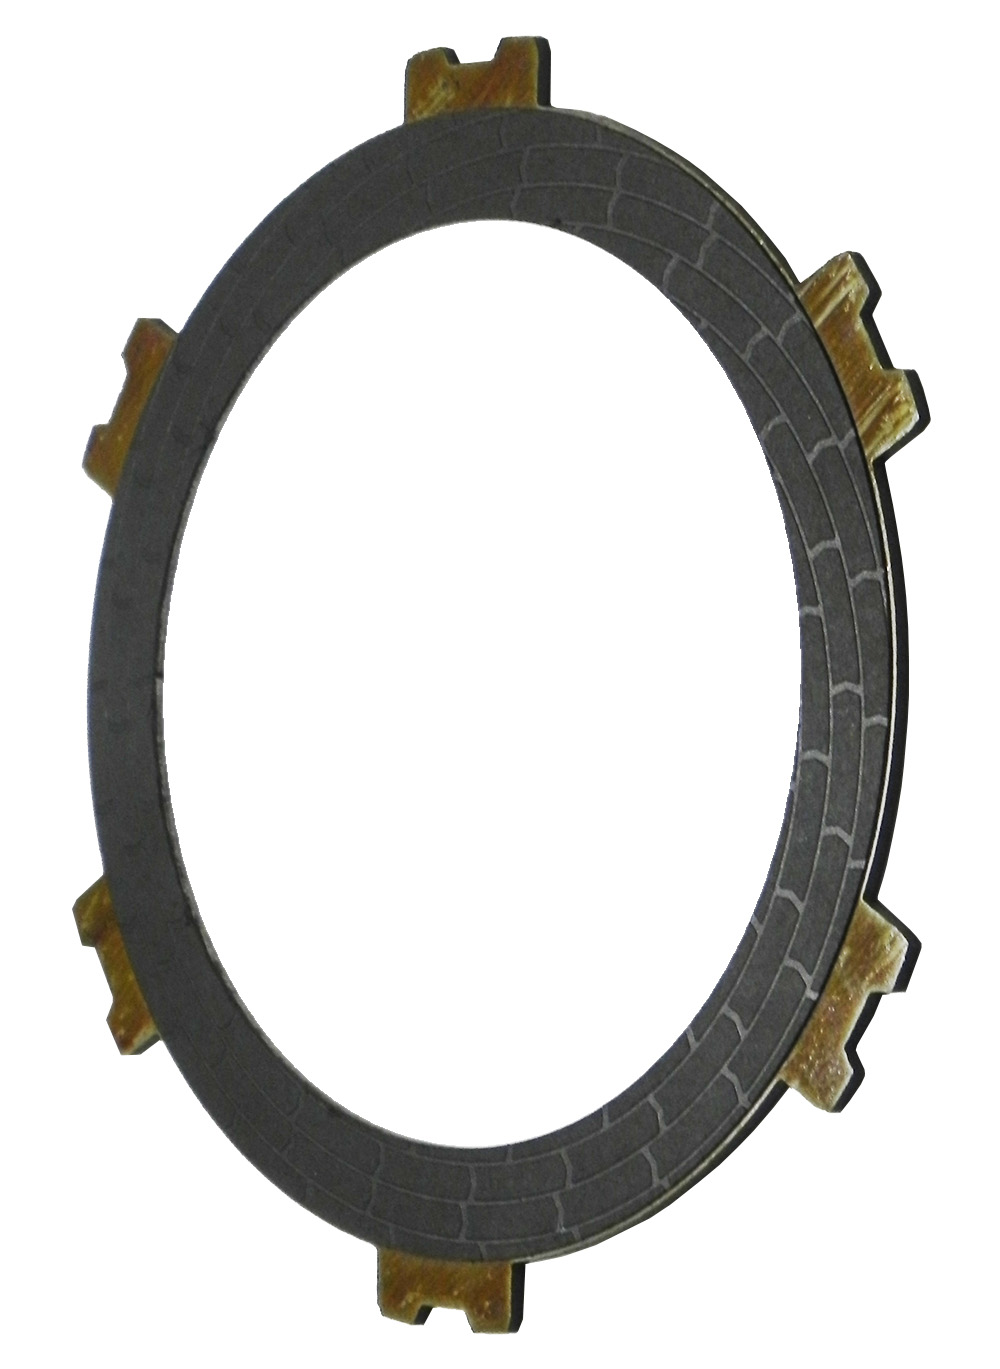 A5HF1 (HT) Hybrid Technology Friction Clutch Plate